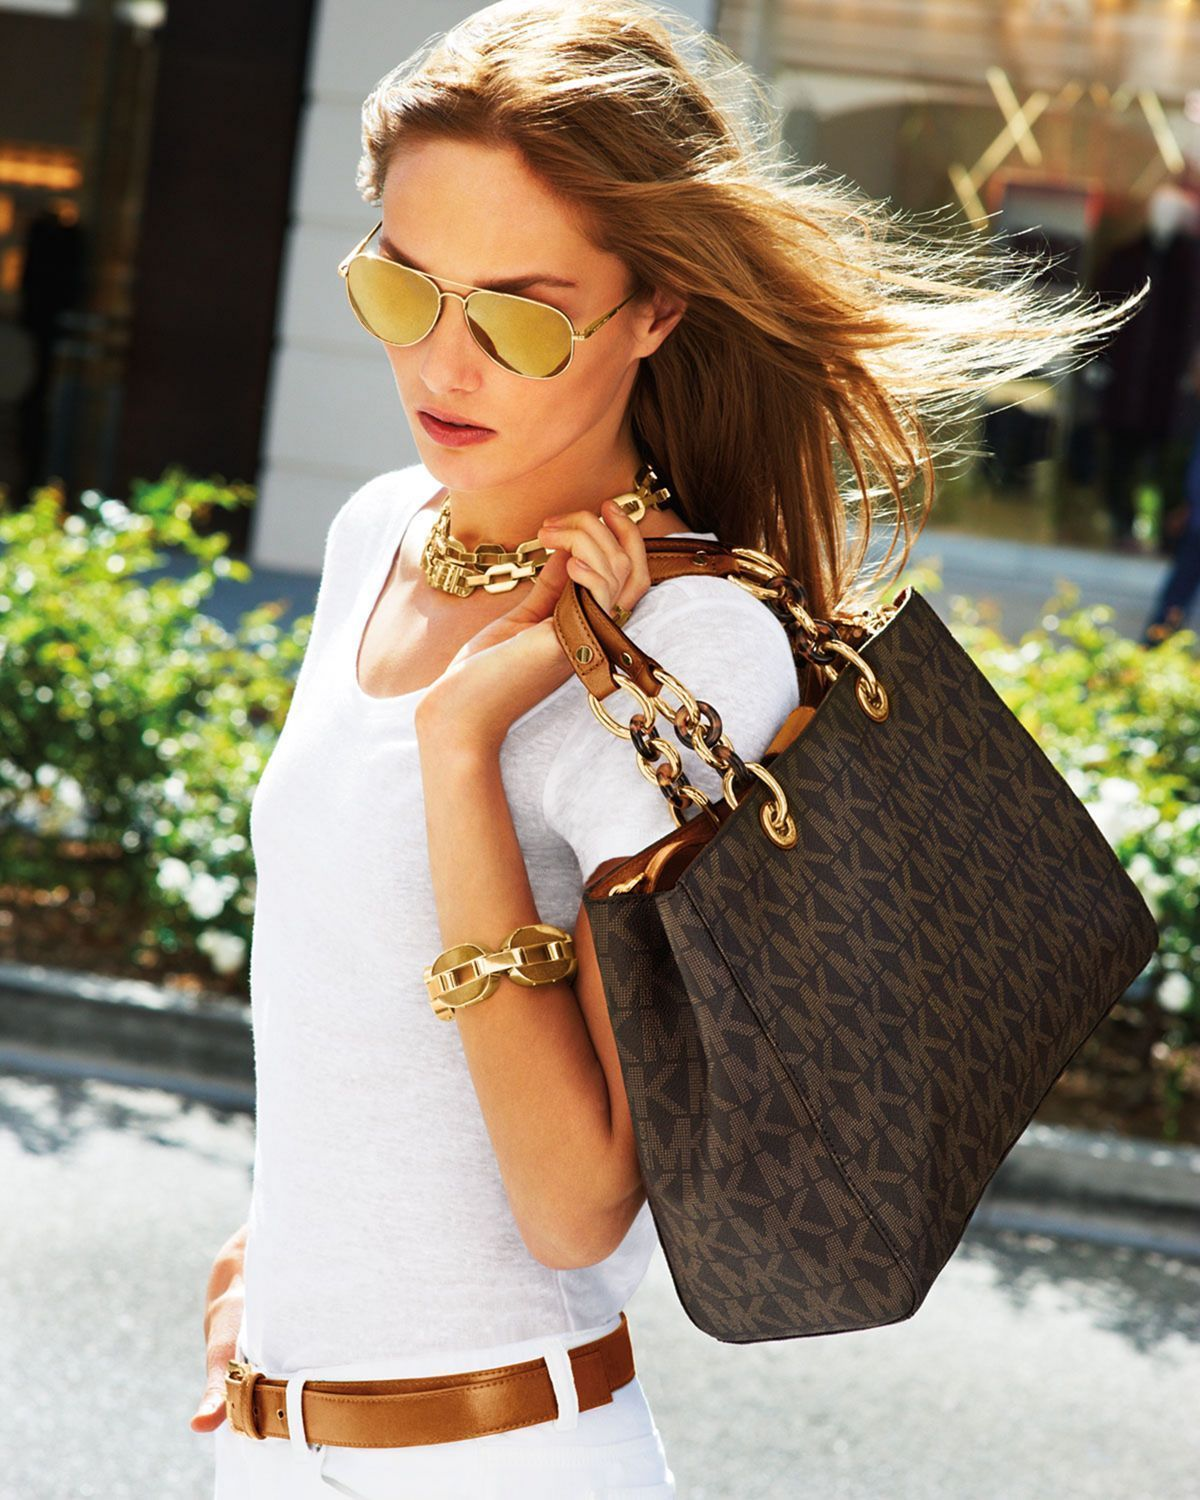 Flawless 15 Incredible Women's Bags Models To Keep Looking Stylish /...     Source by rohayaticom B